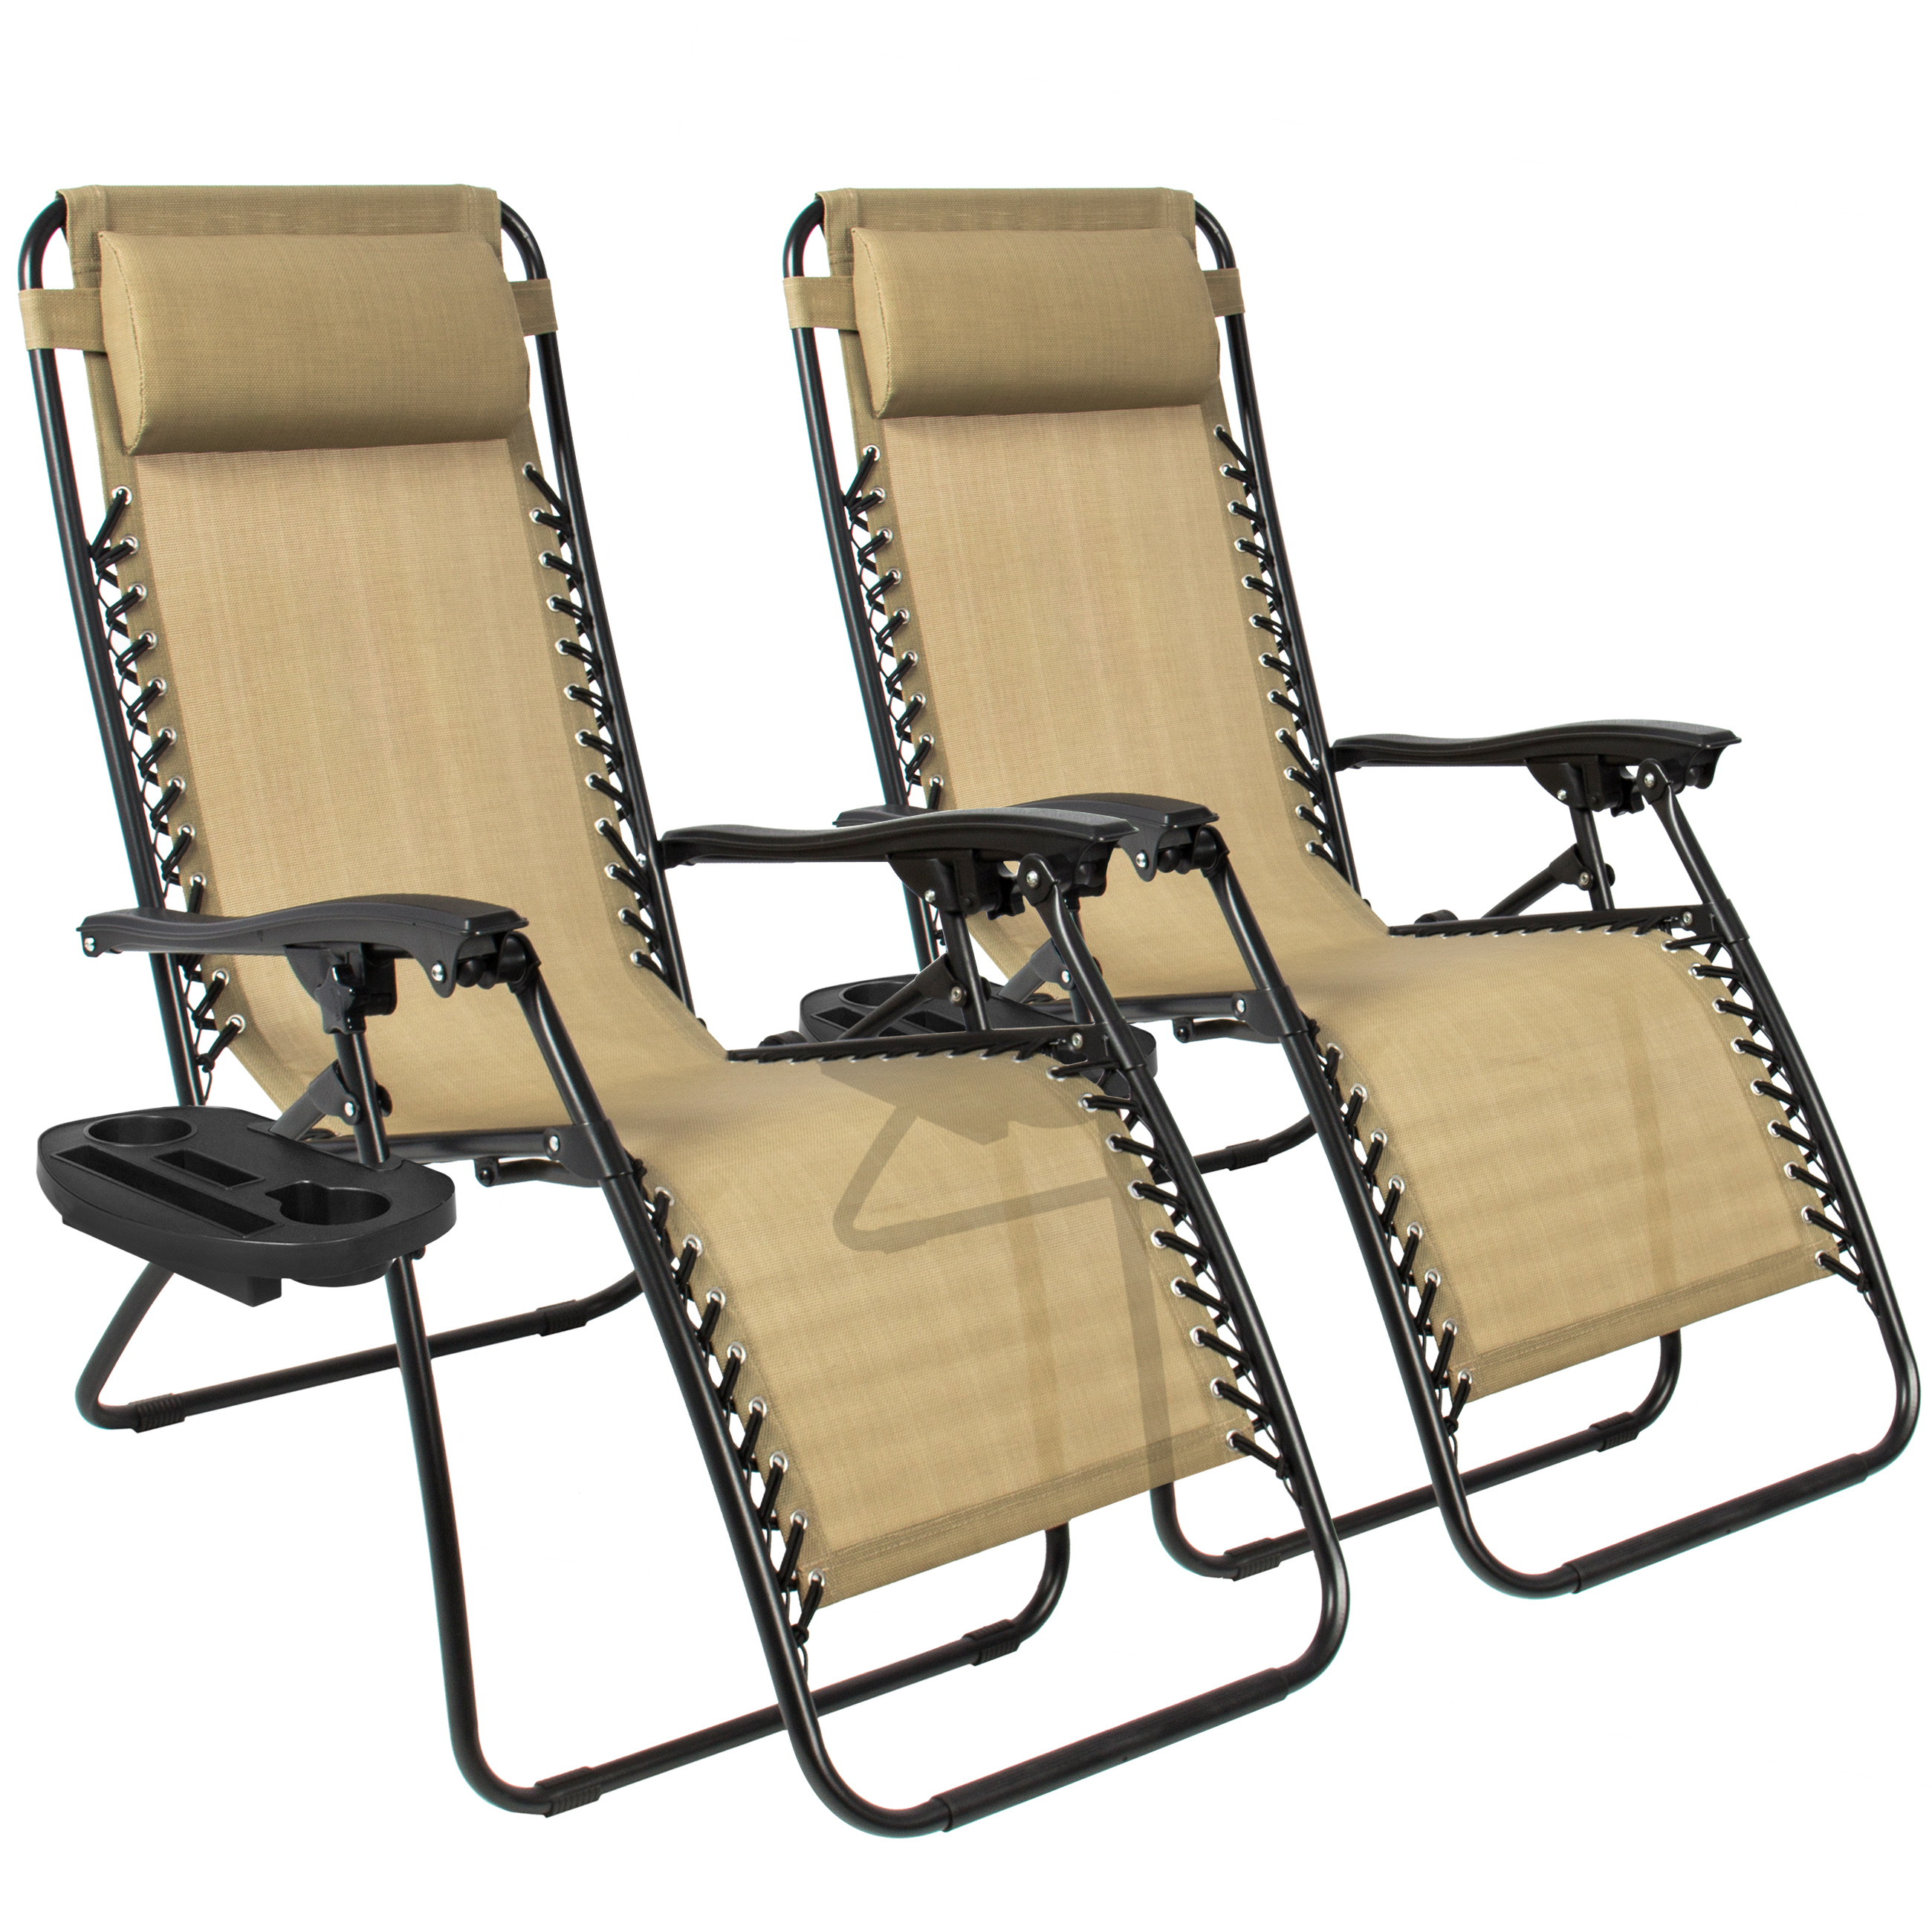 Zero Gravity Chairs Case Of (2) Lounge Patio Chairs Outdoor Yard Beach New  Image